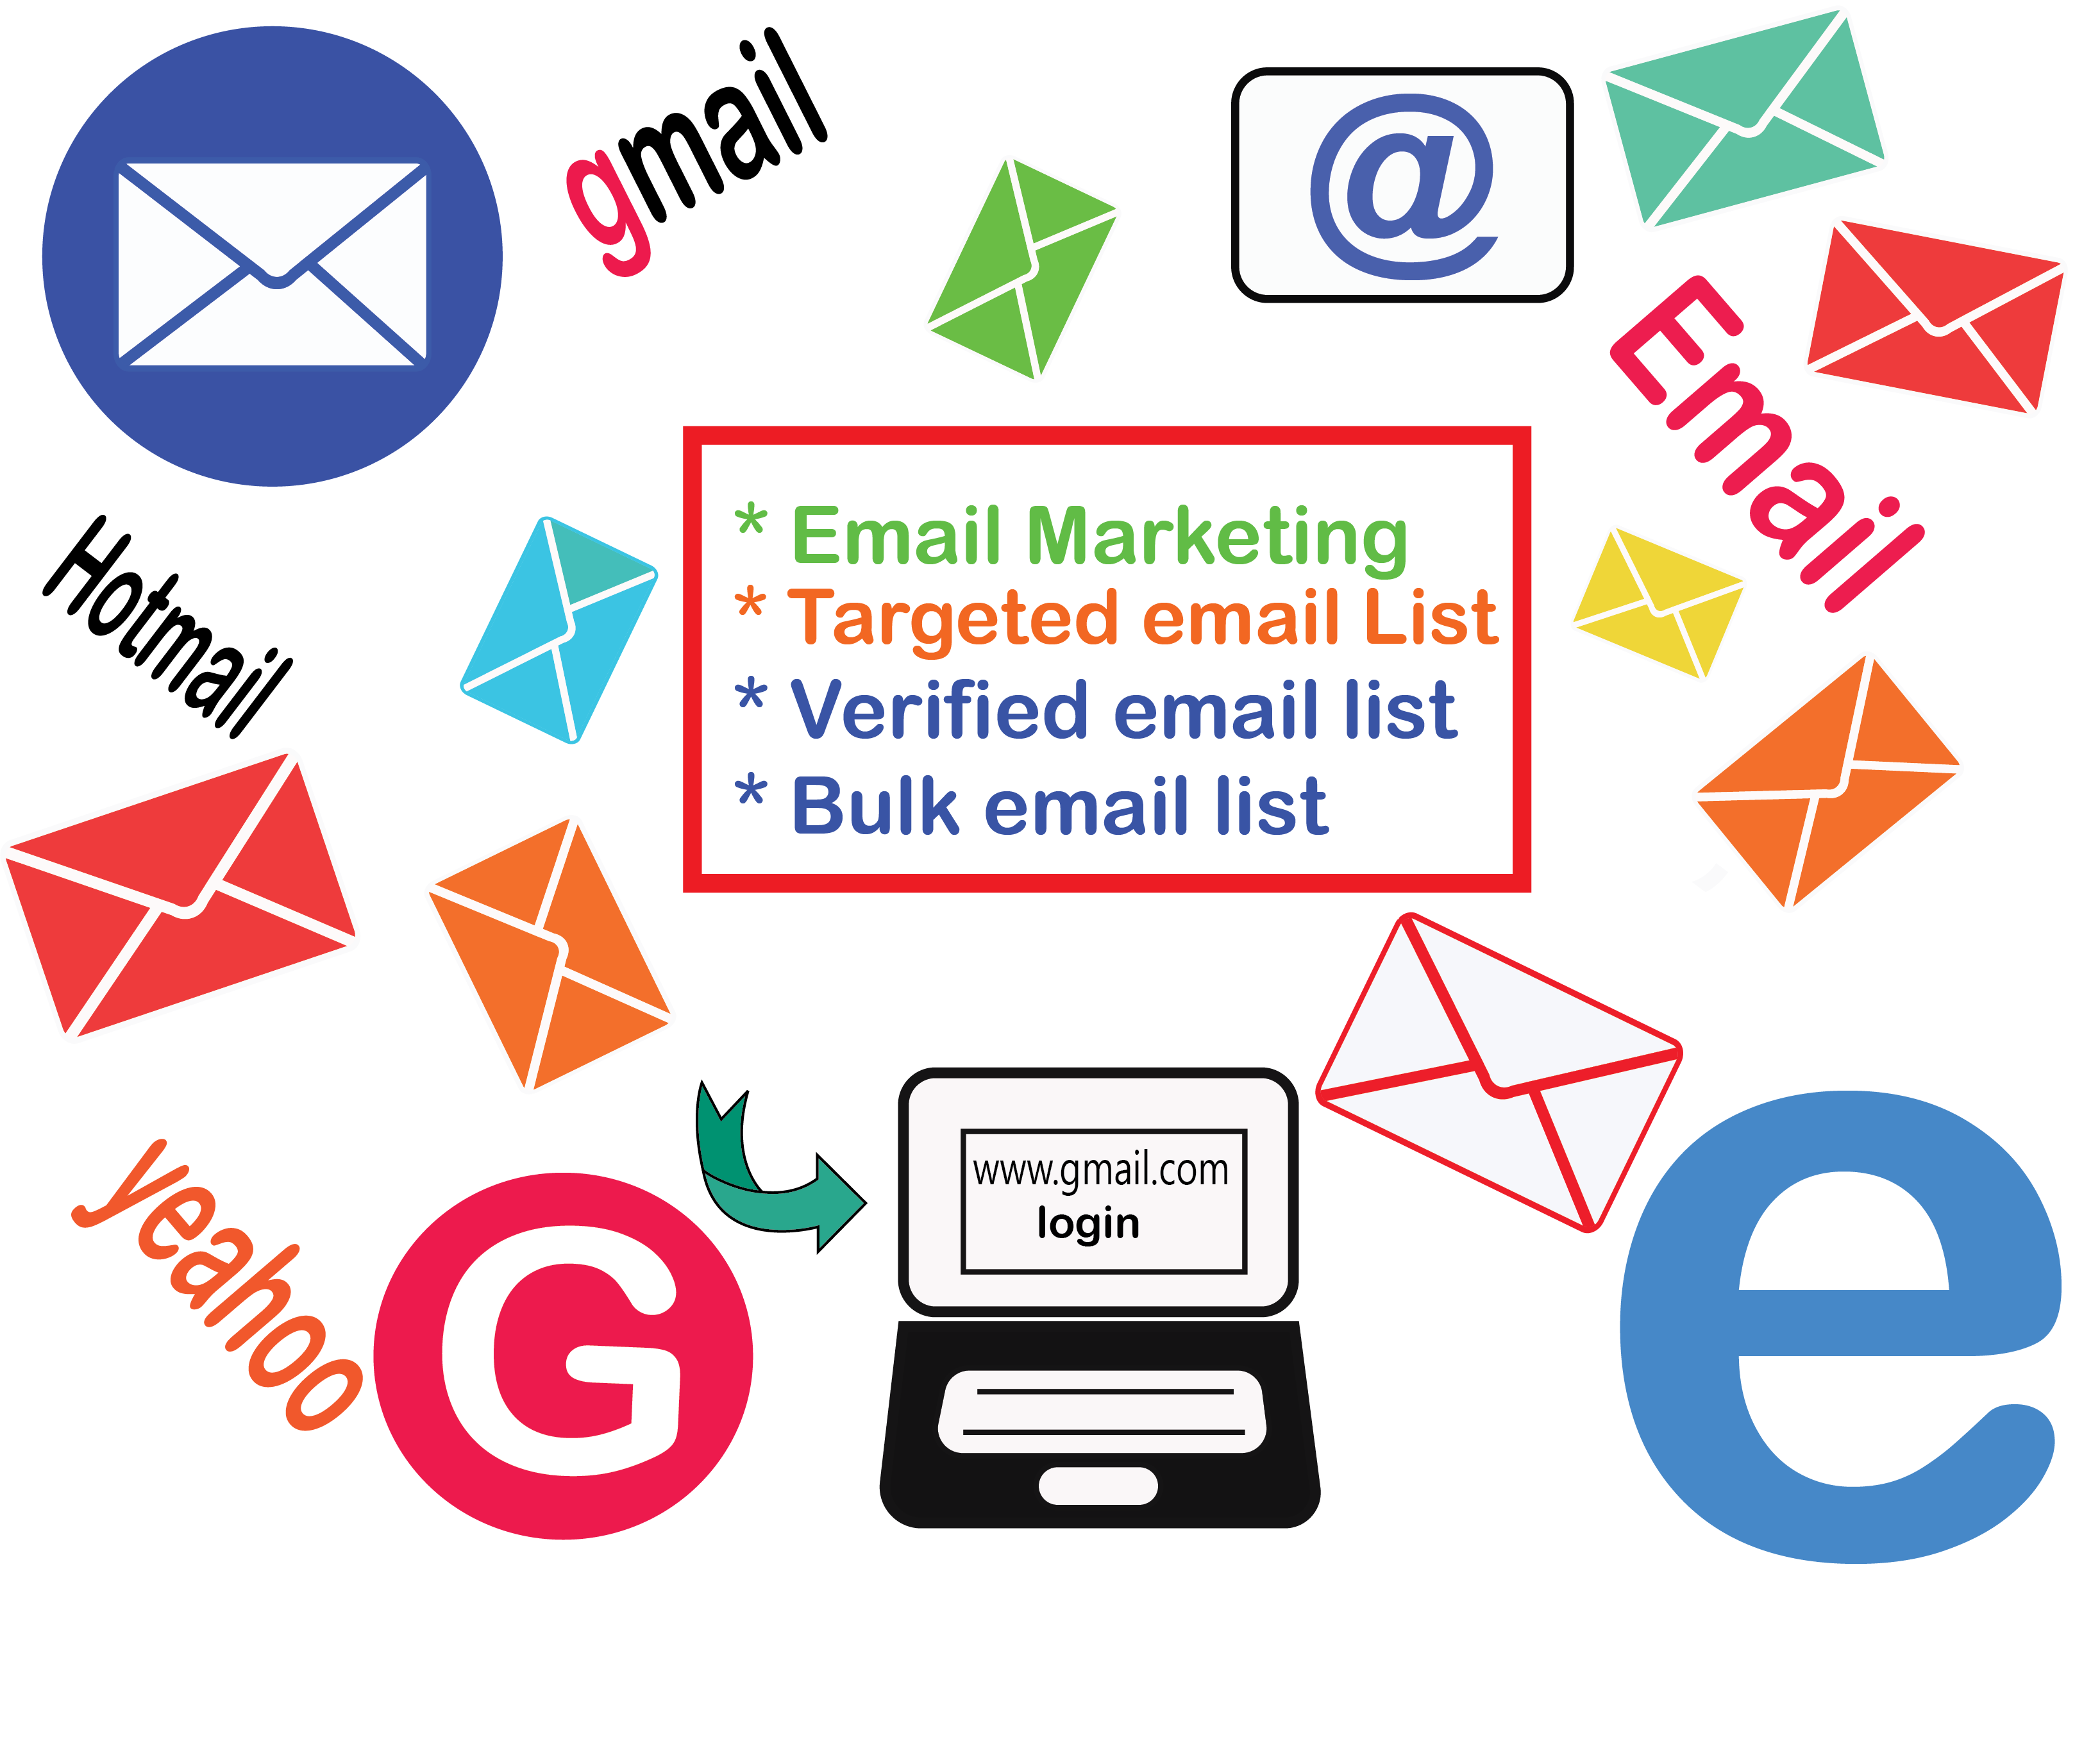 You will be provided 1k valid email for marketing purposes